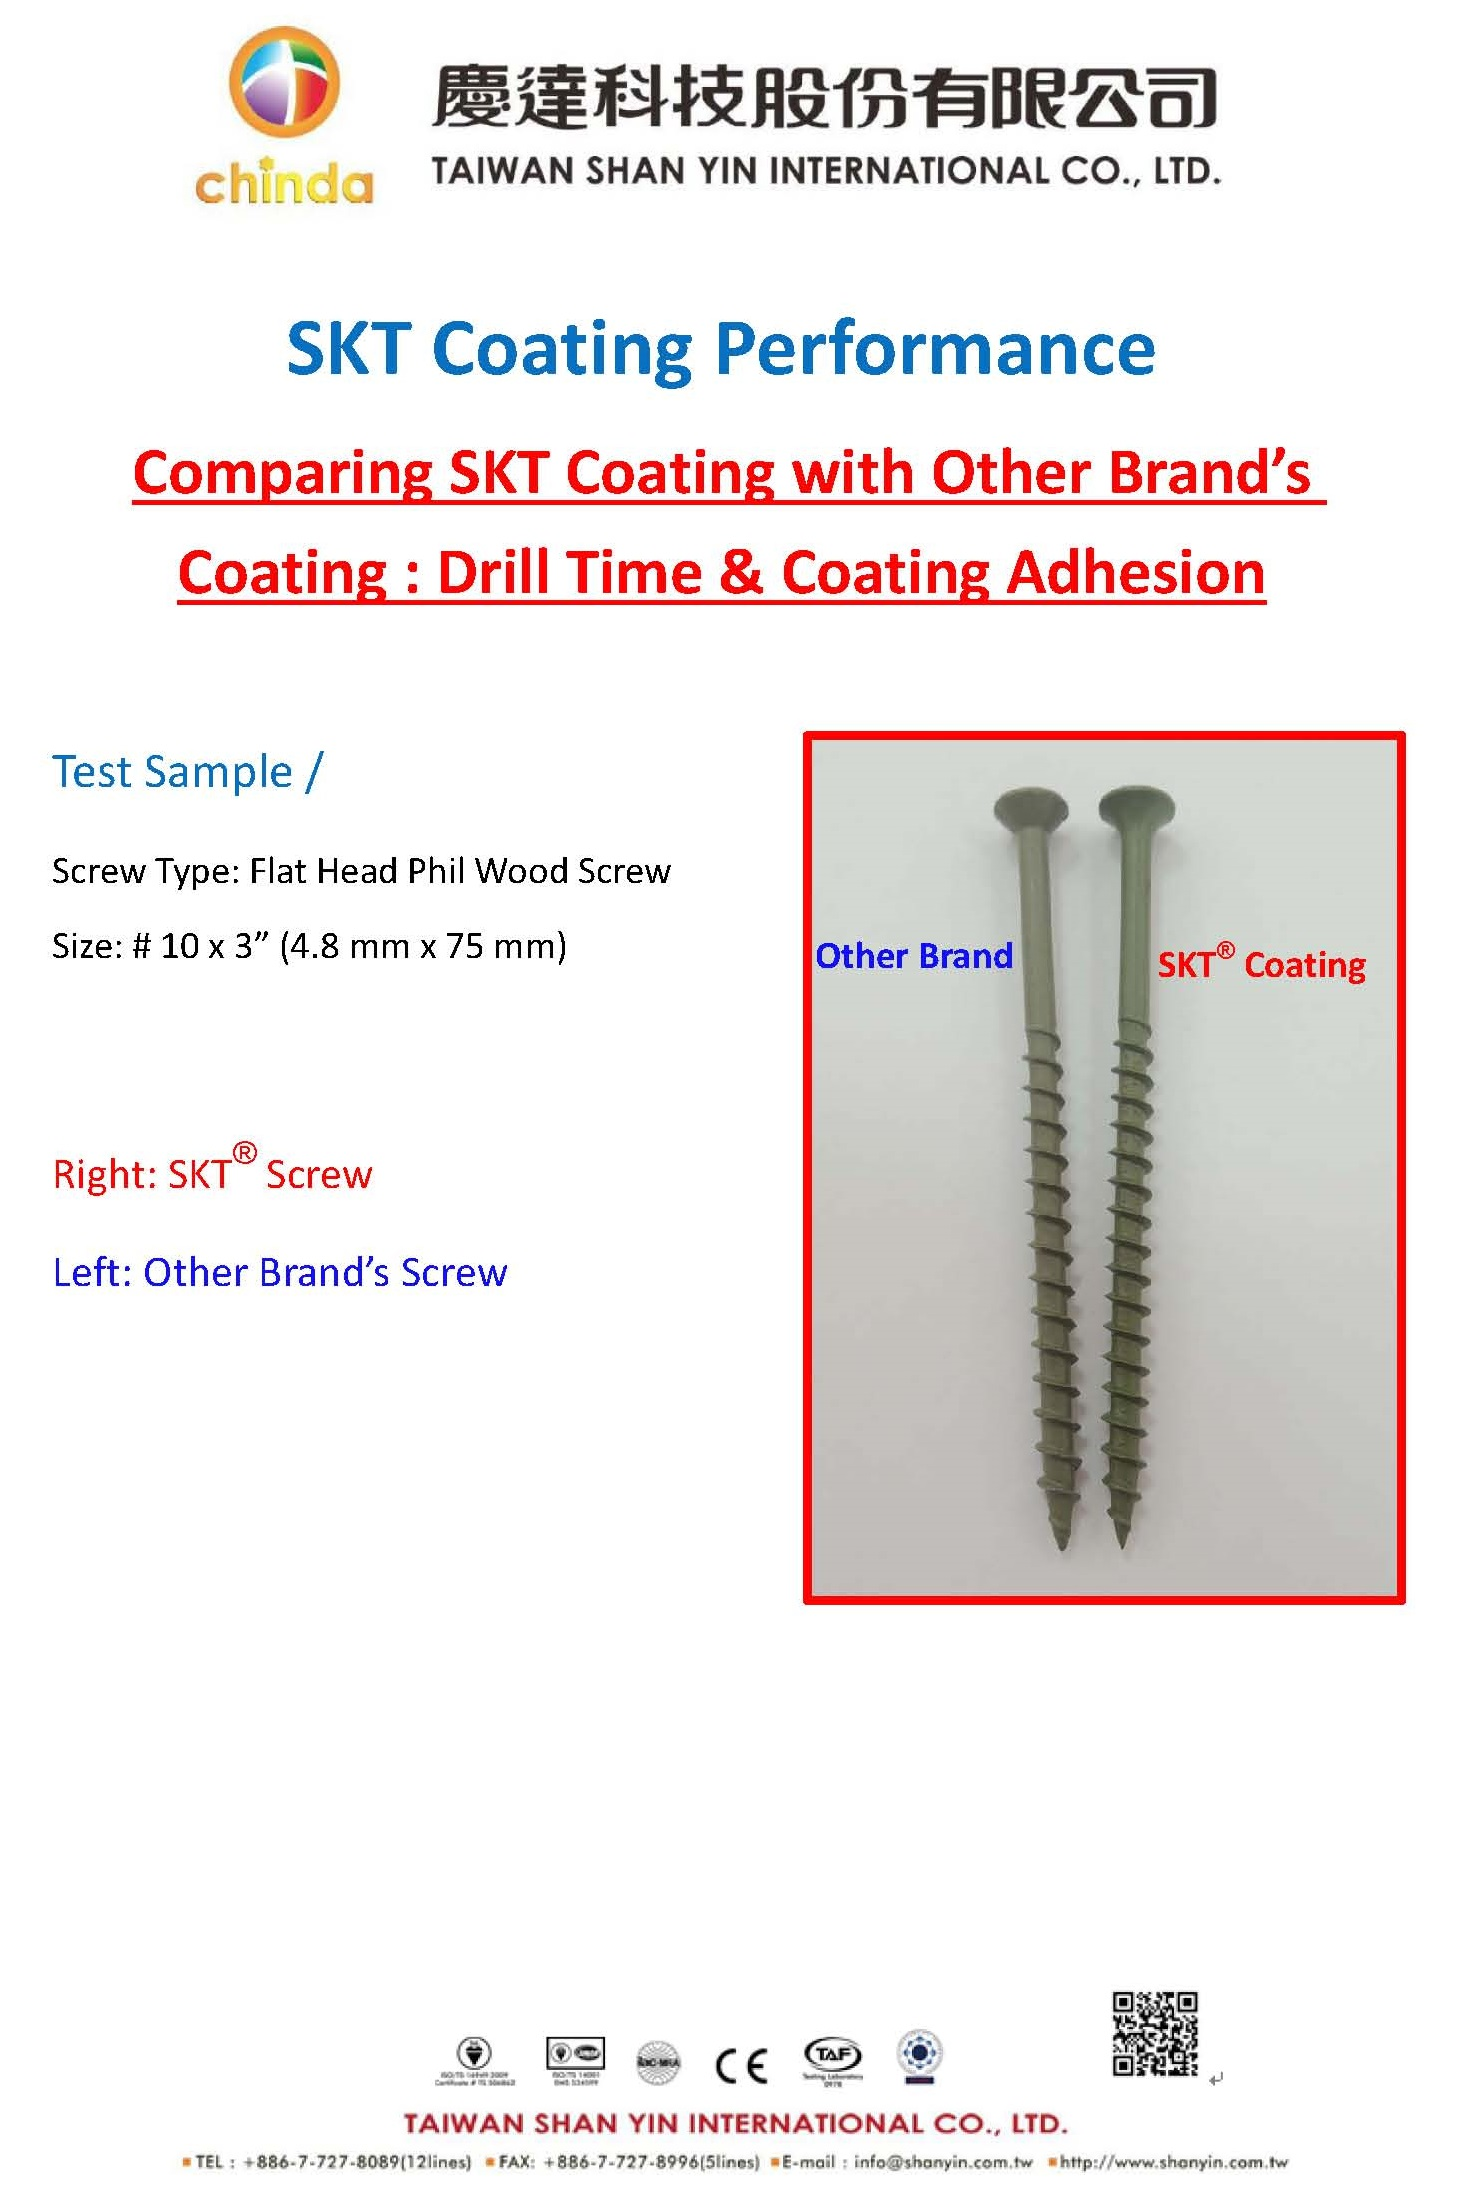 SKT Coating Performance is Better Than Other Brands-TAIWAN SHAN YIN